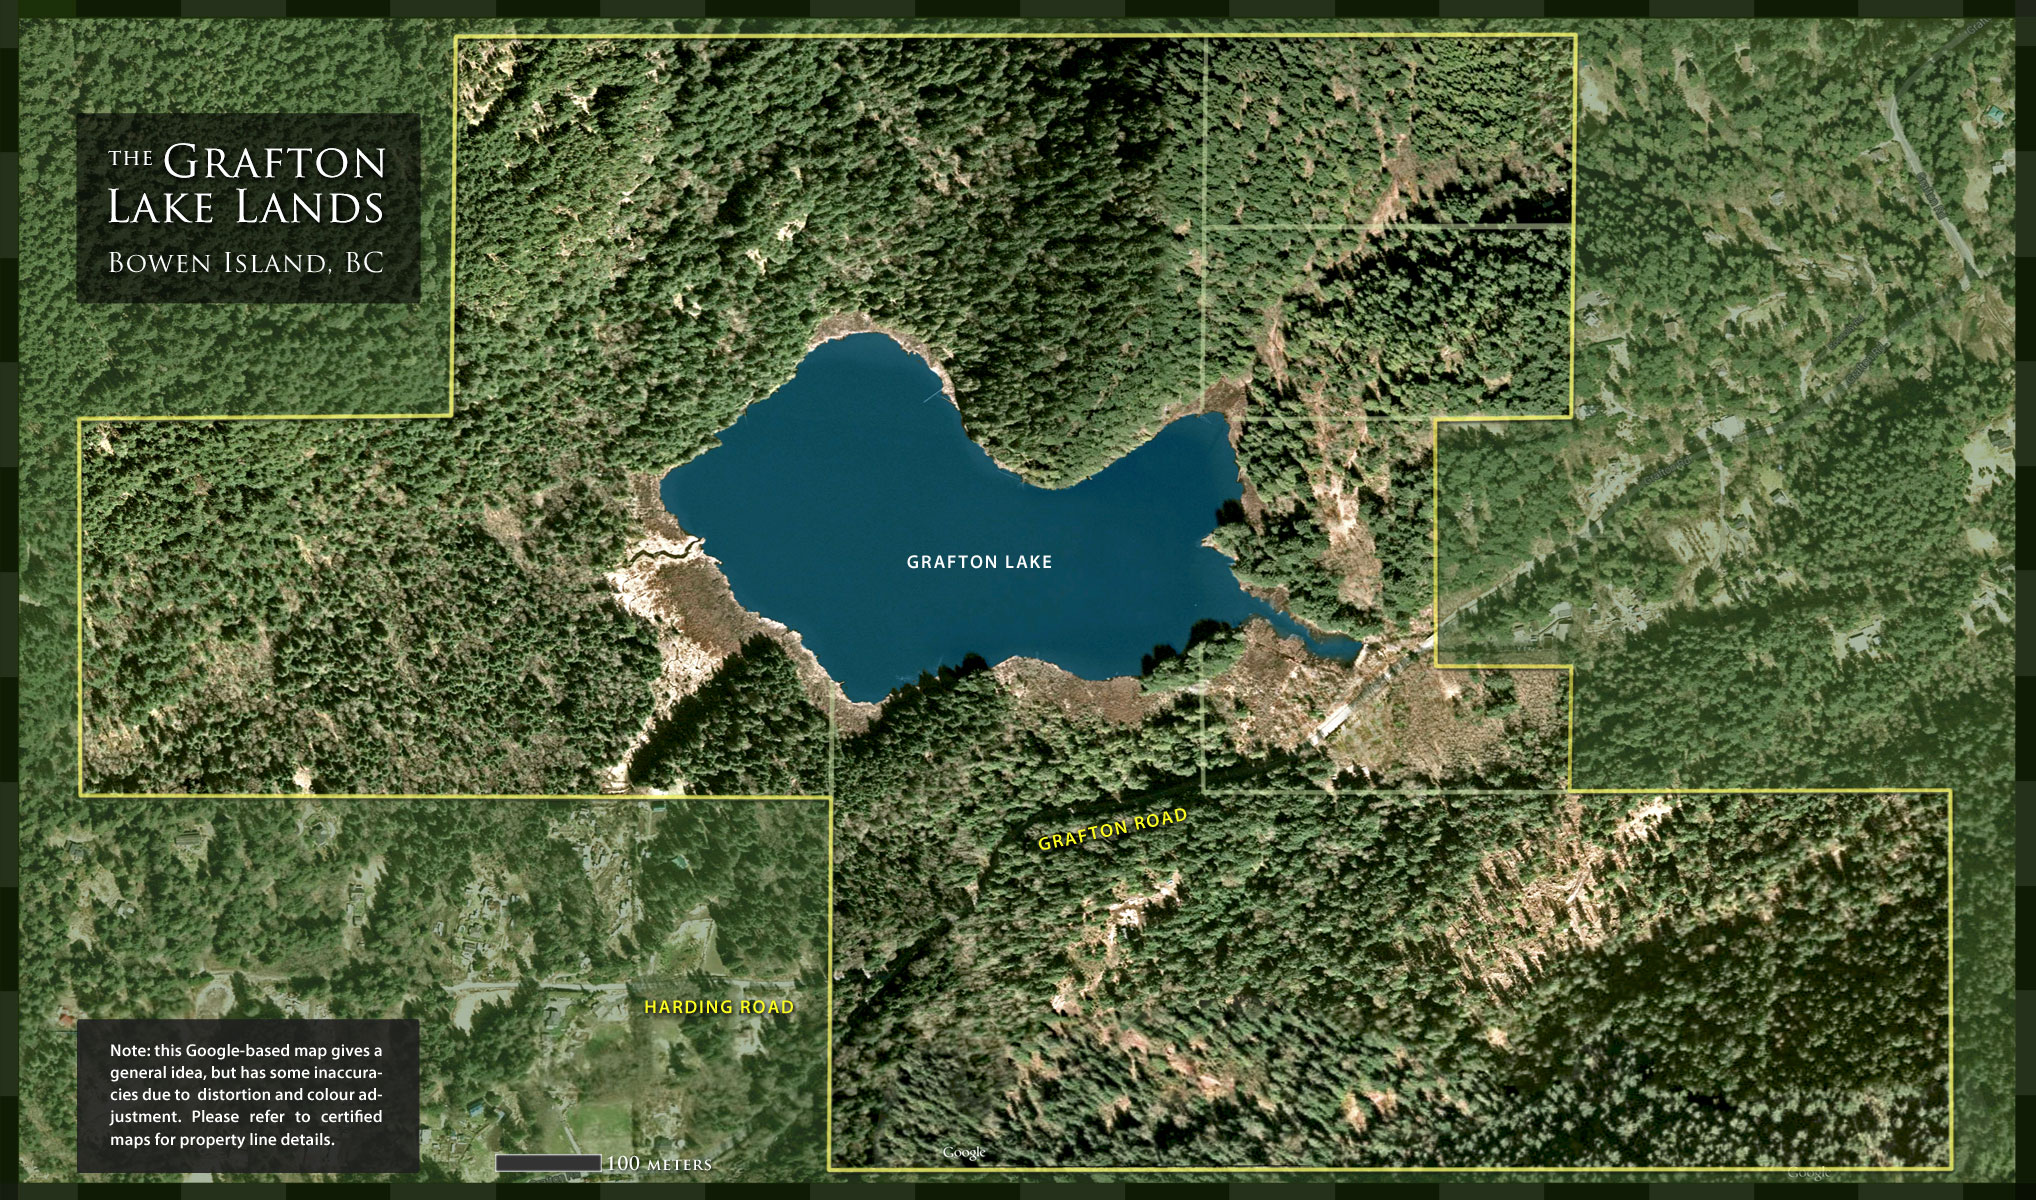 Grafton-Lake-Lands-Satellite-Map-1200high